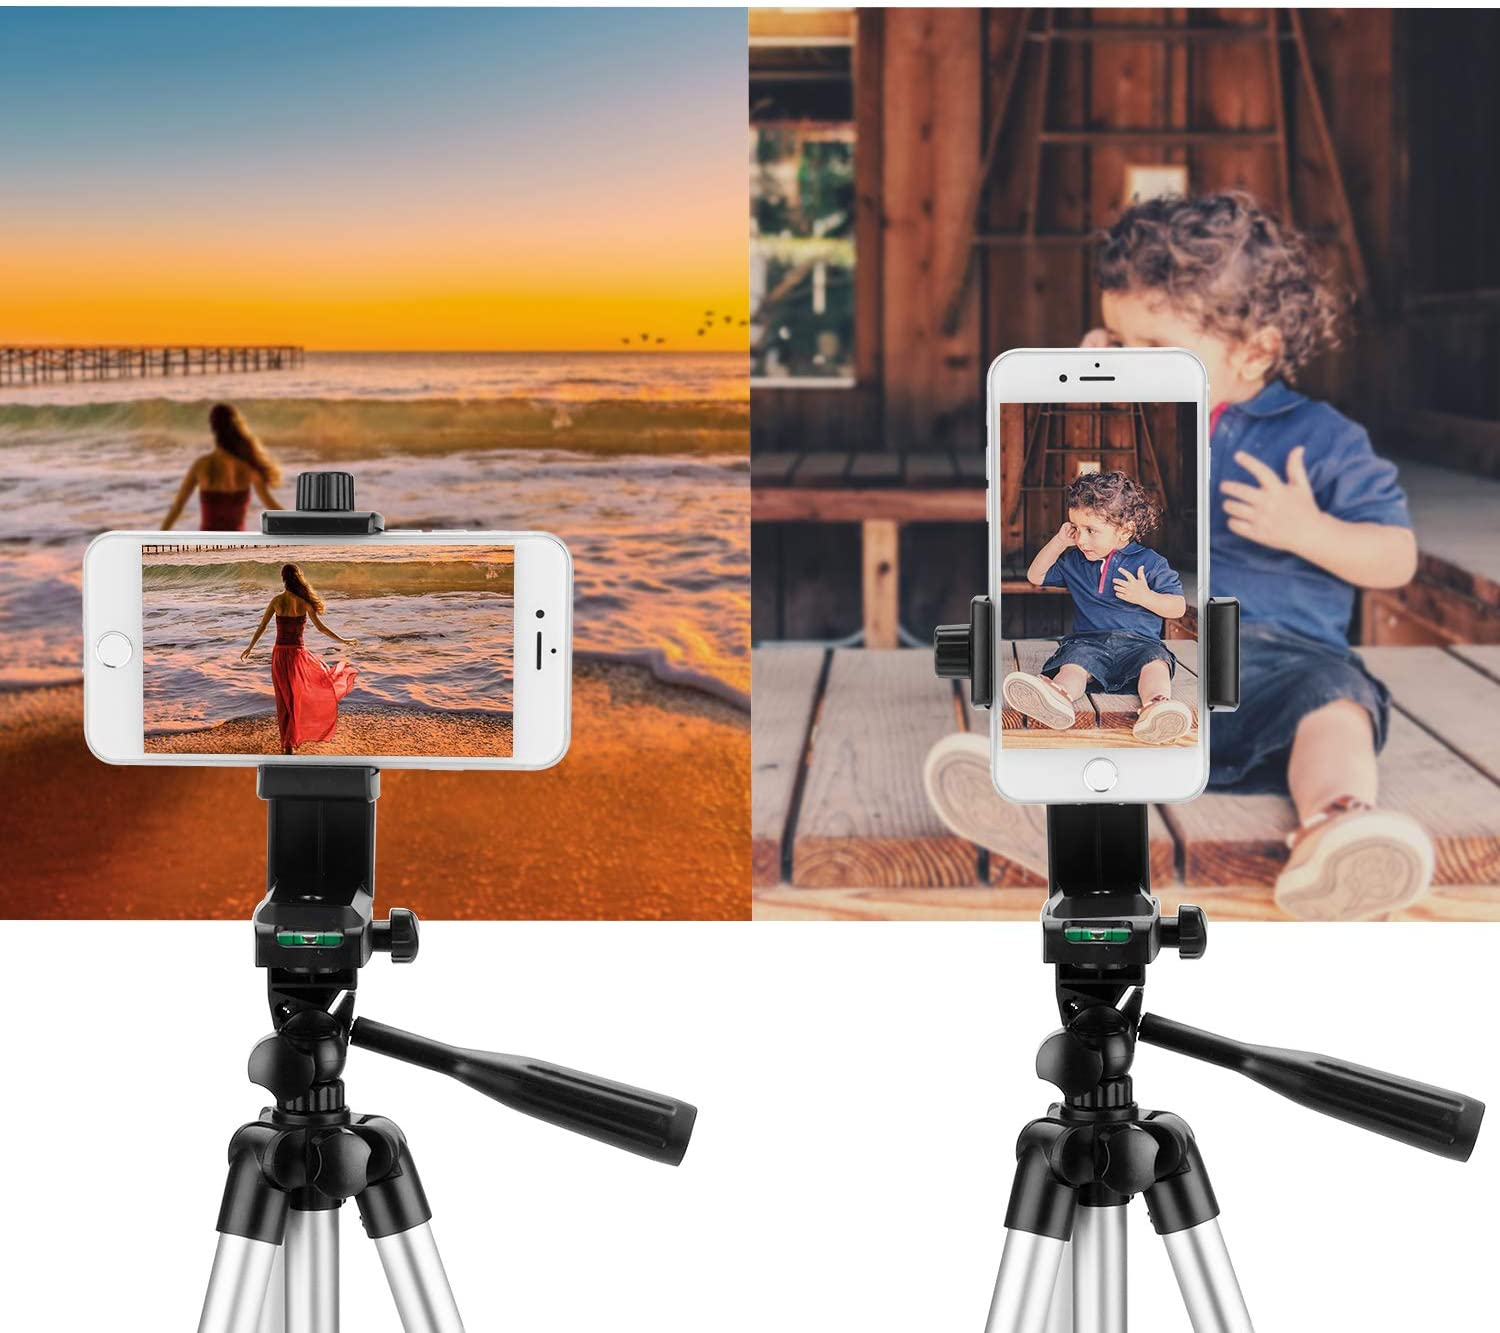 PEYOU Universal 360 Rotation Smartphone Holder Monopod Adapter Clamp Bracket Compatible for iPhone Xs Max XR X 8 7 6S 6 Plus for Galaxy Note 9 8 S10 S9 S8 Plus S10e Phone Tripod Mount with Remote